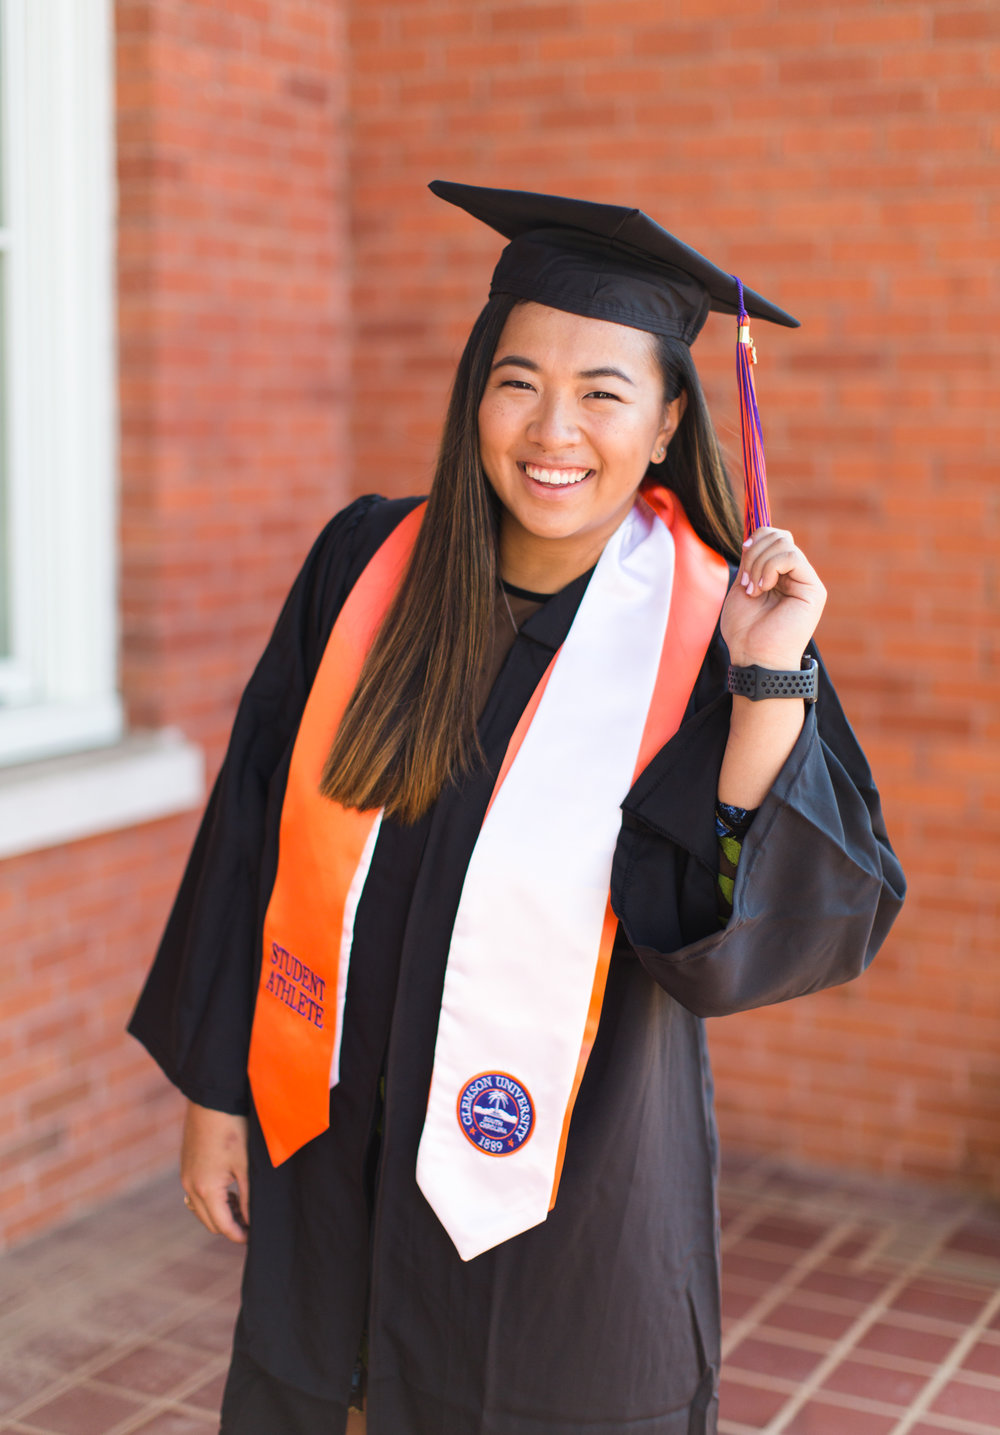 Taryn_Carroll-Clemson-University Senior Photo-0429.jpg